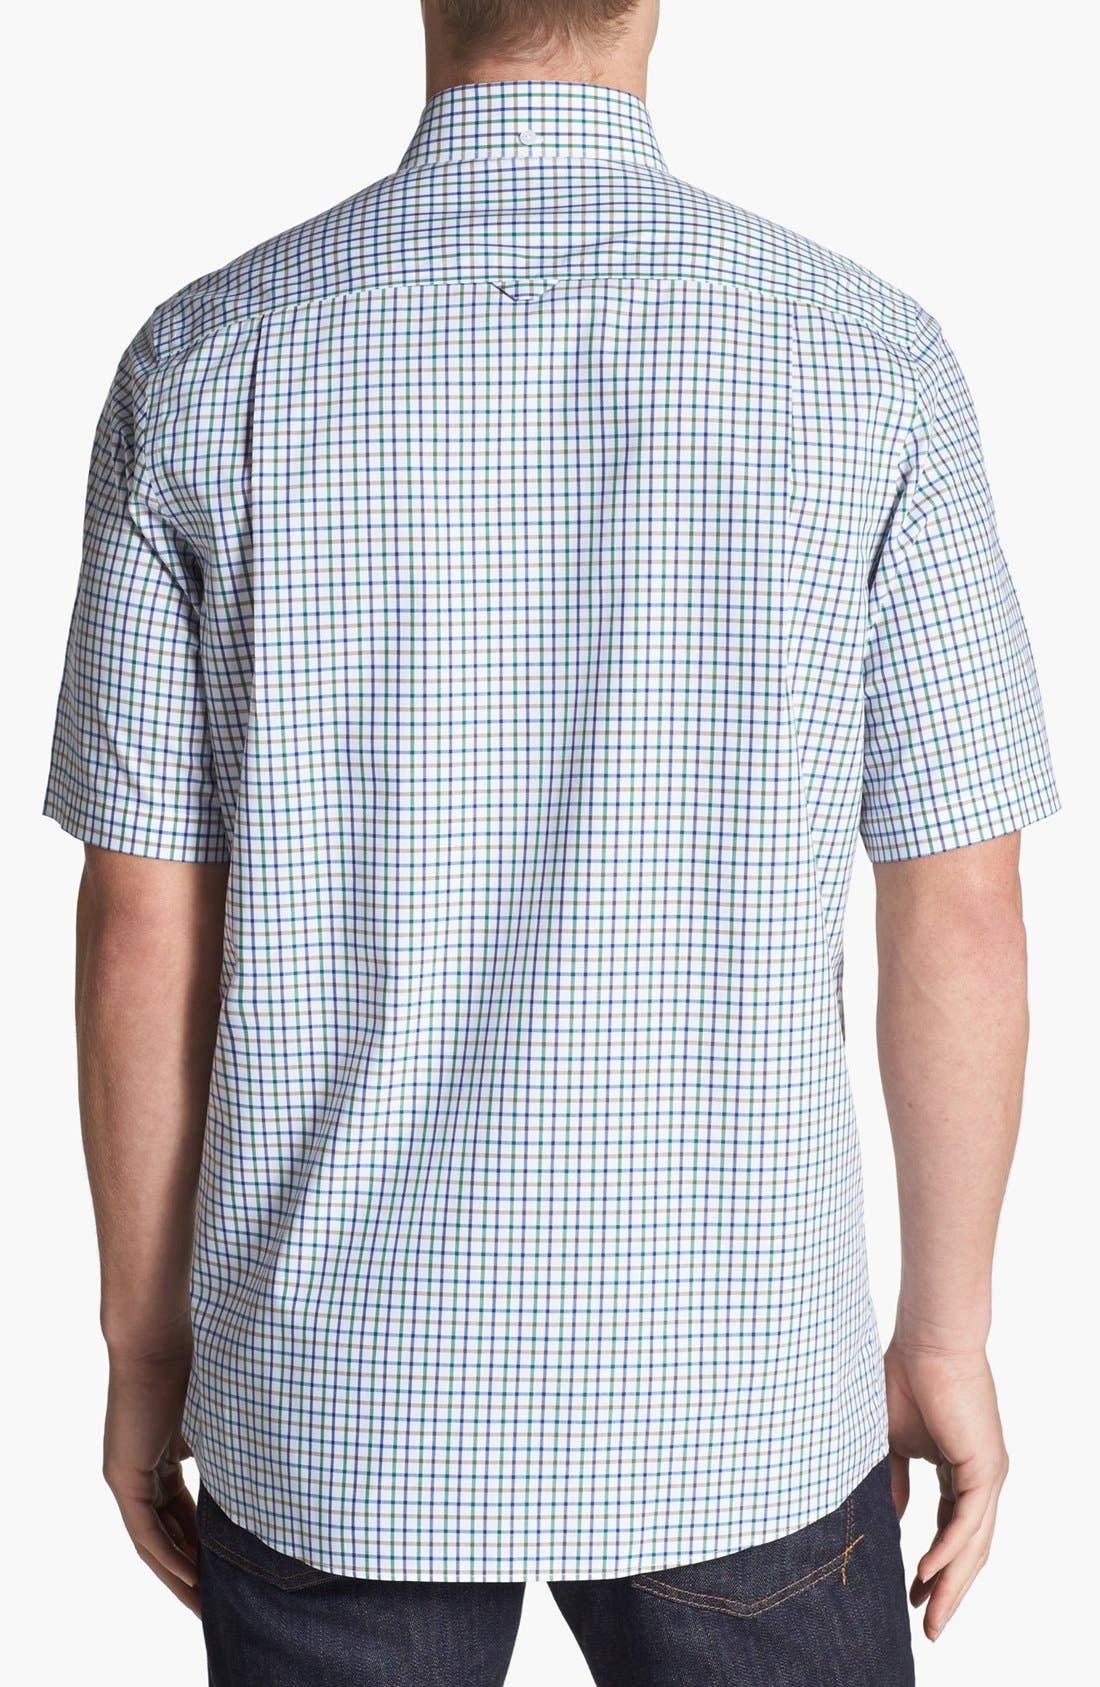 Alternate Image 2  - Nordstrom Smartcare™ Short Sleeve Poplin Sport Shirt